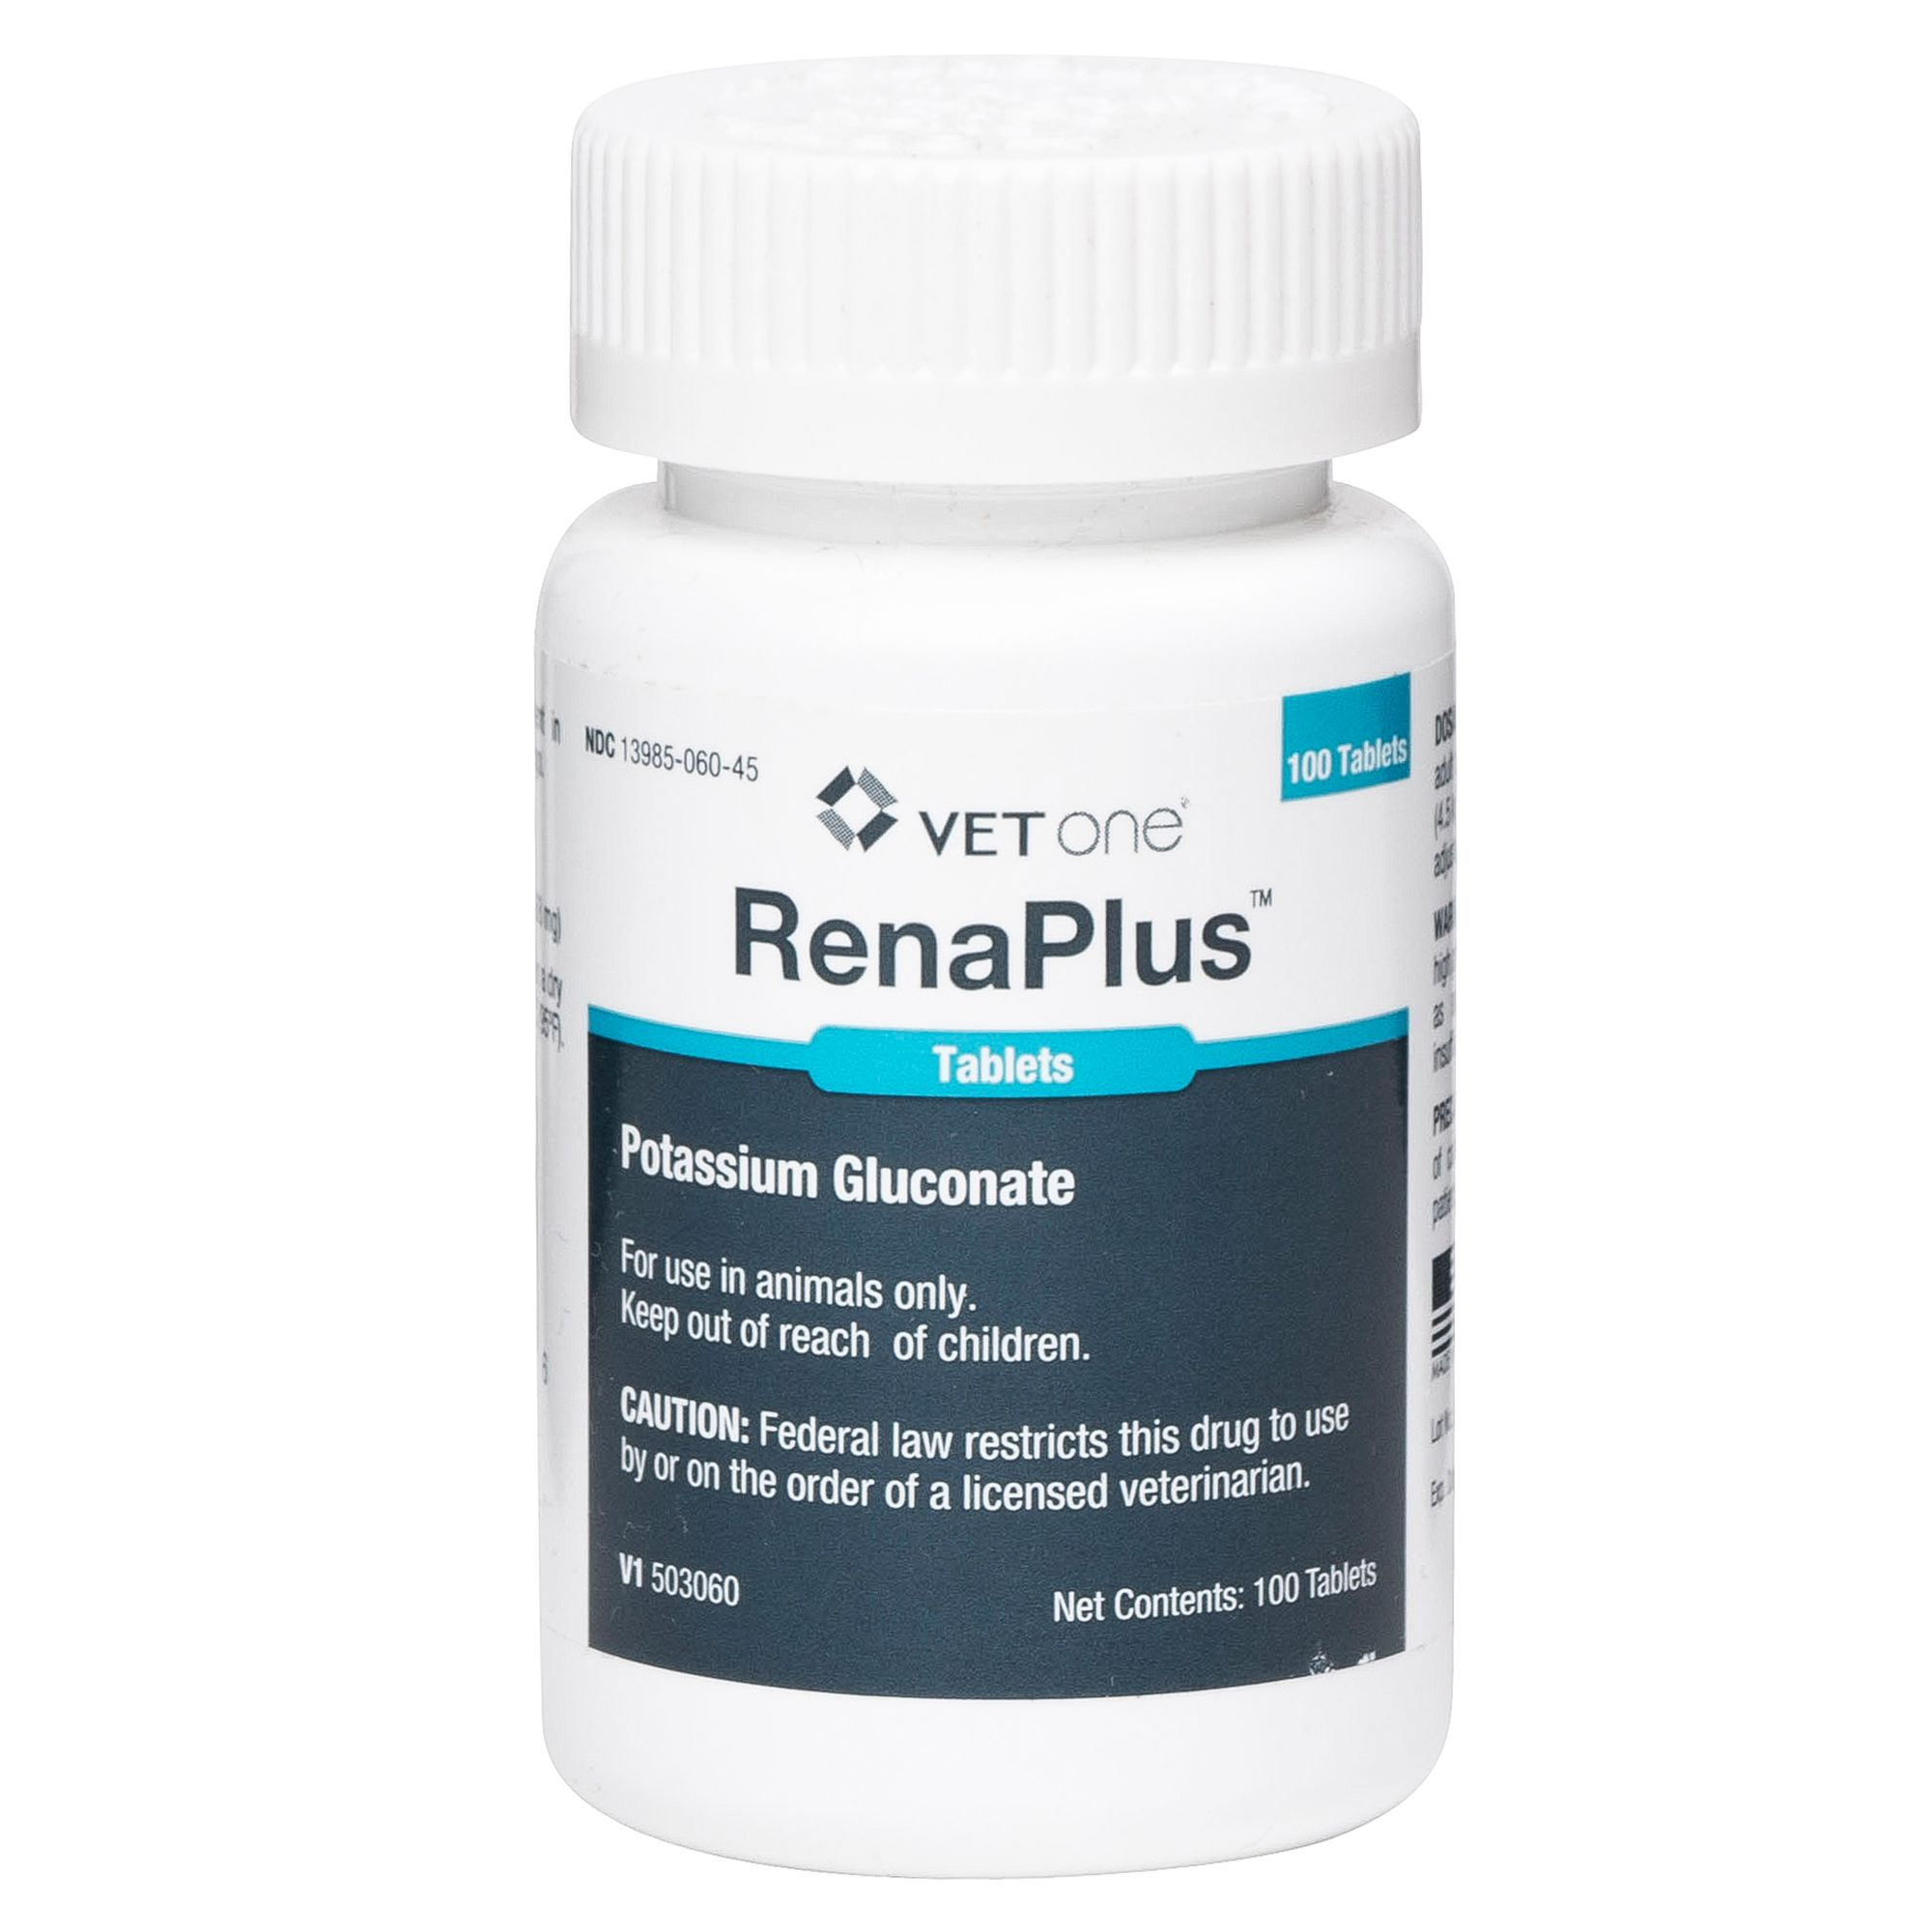 RenaPlus Tablet size: 468 mg